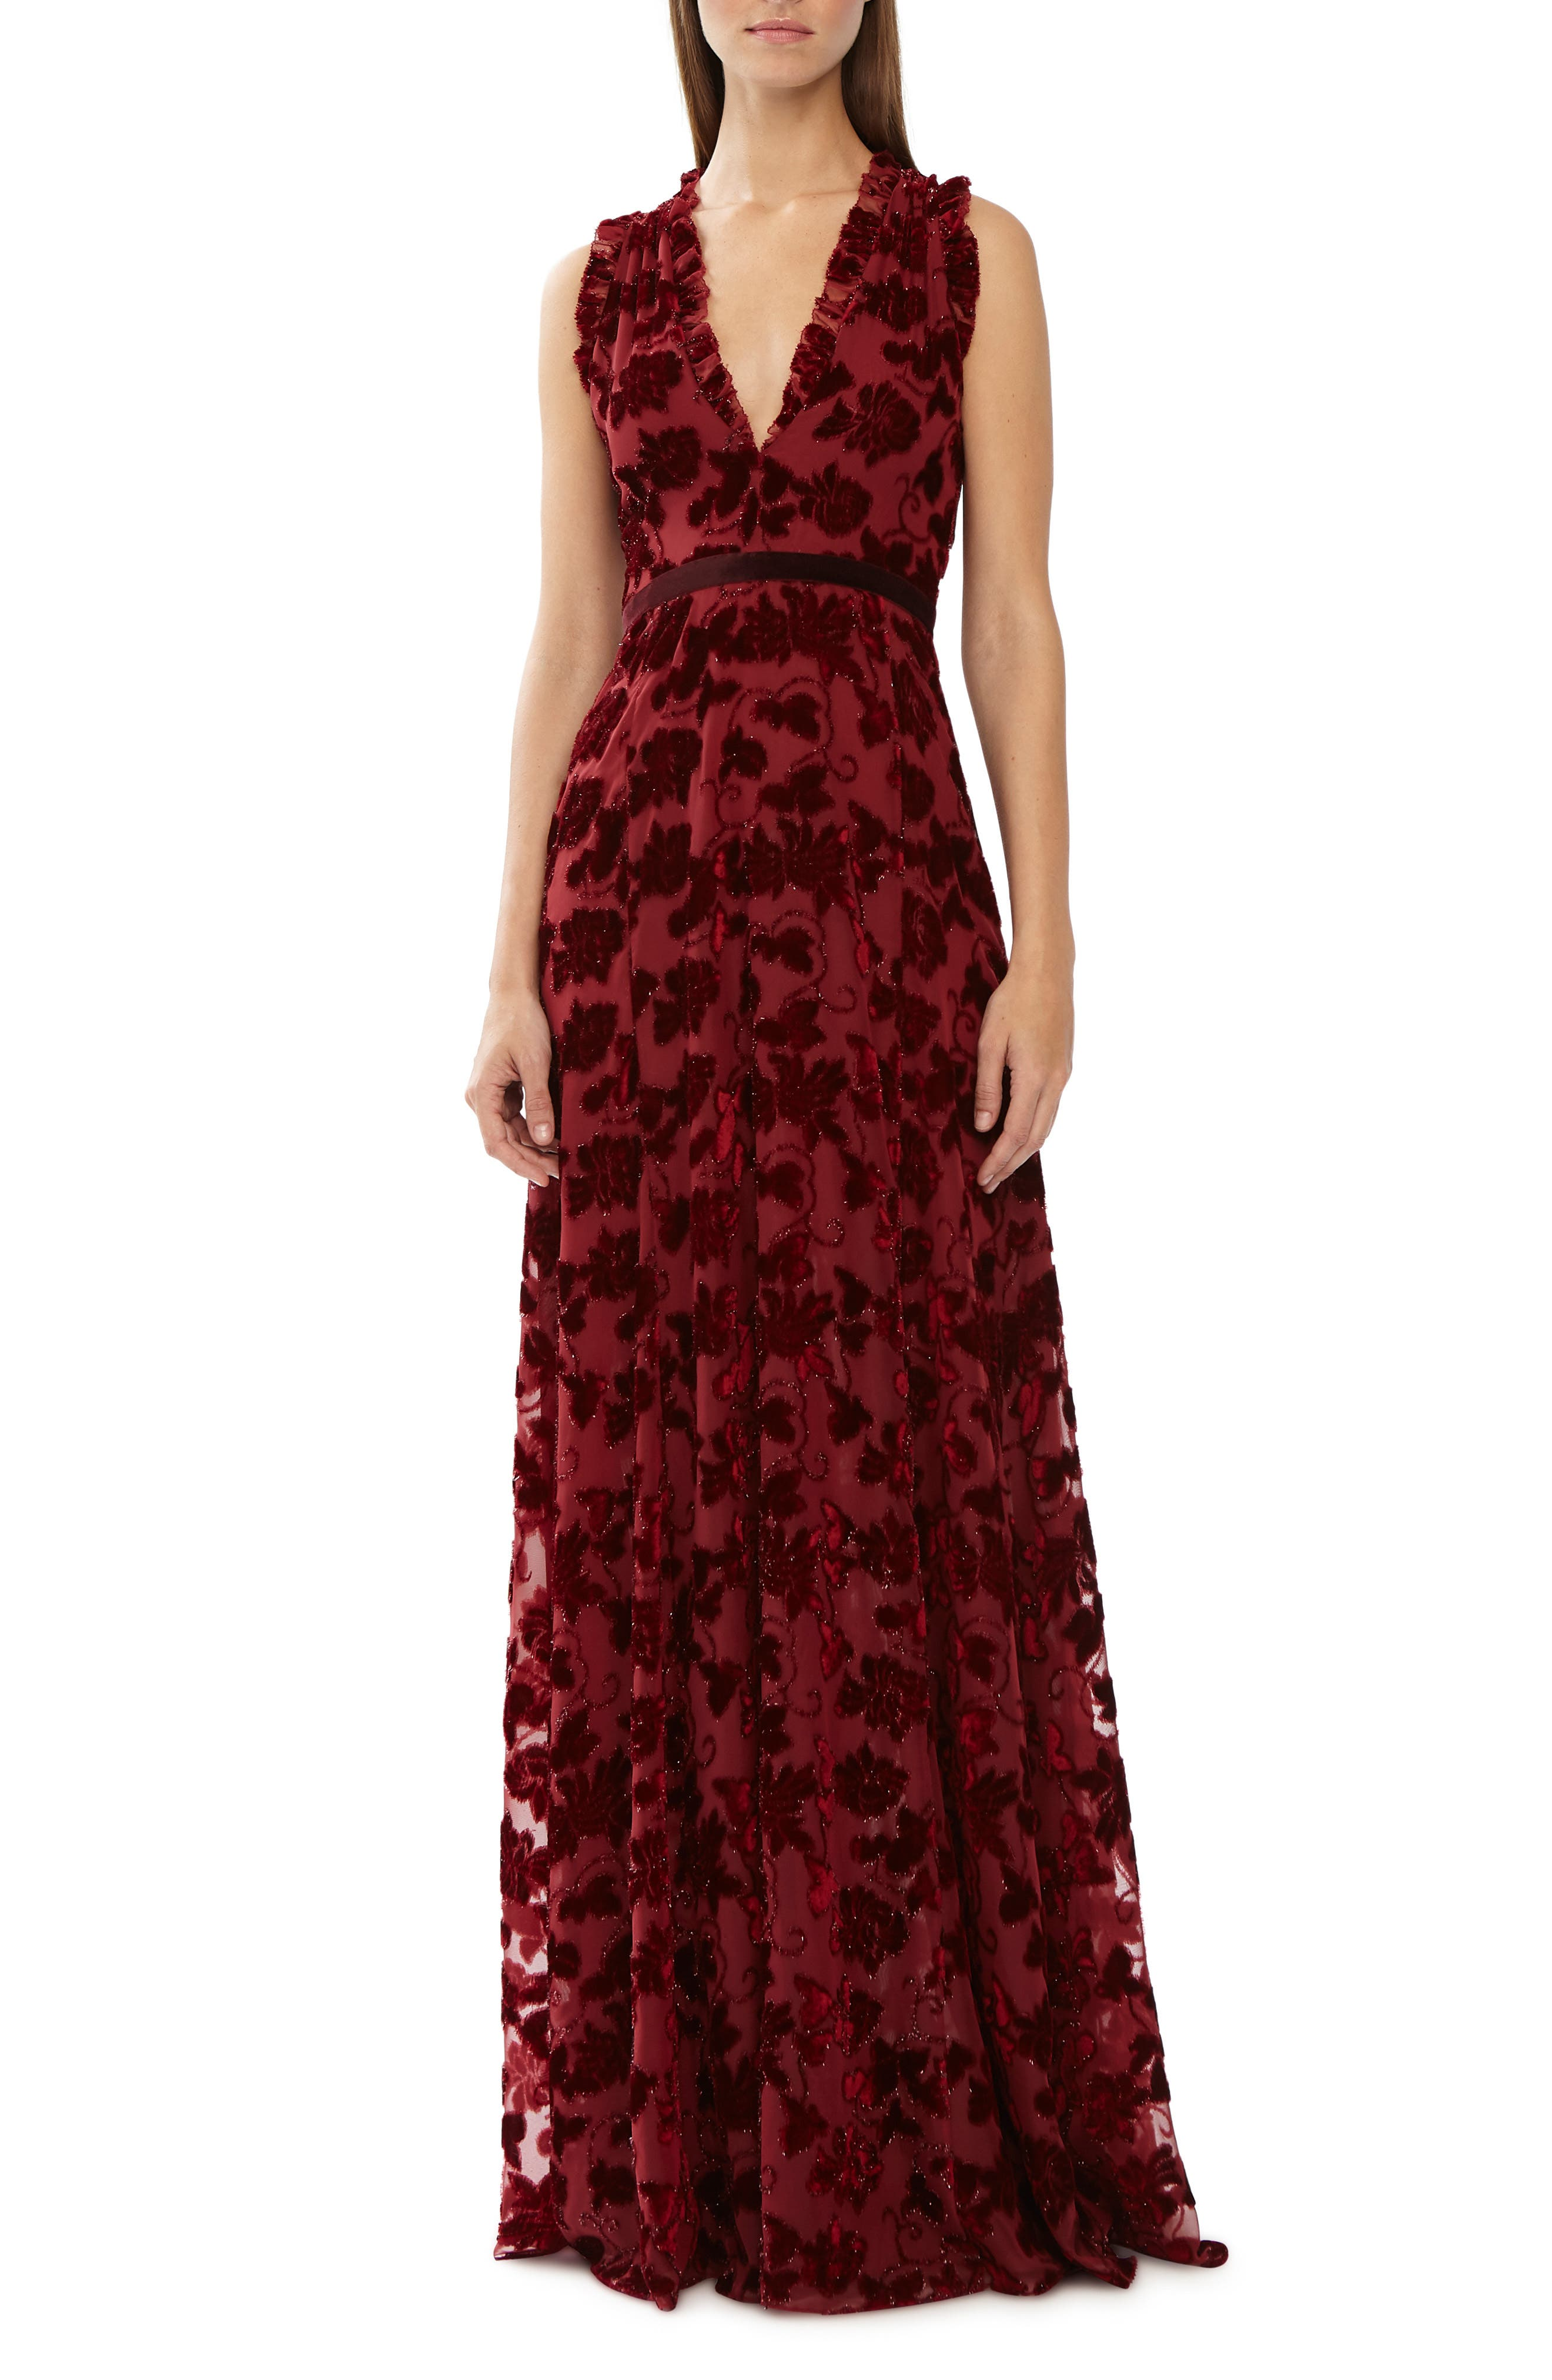 Ml Monique Lhuillier Red Mesh Velvet Gown